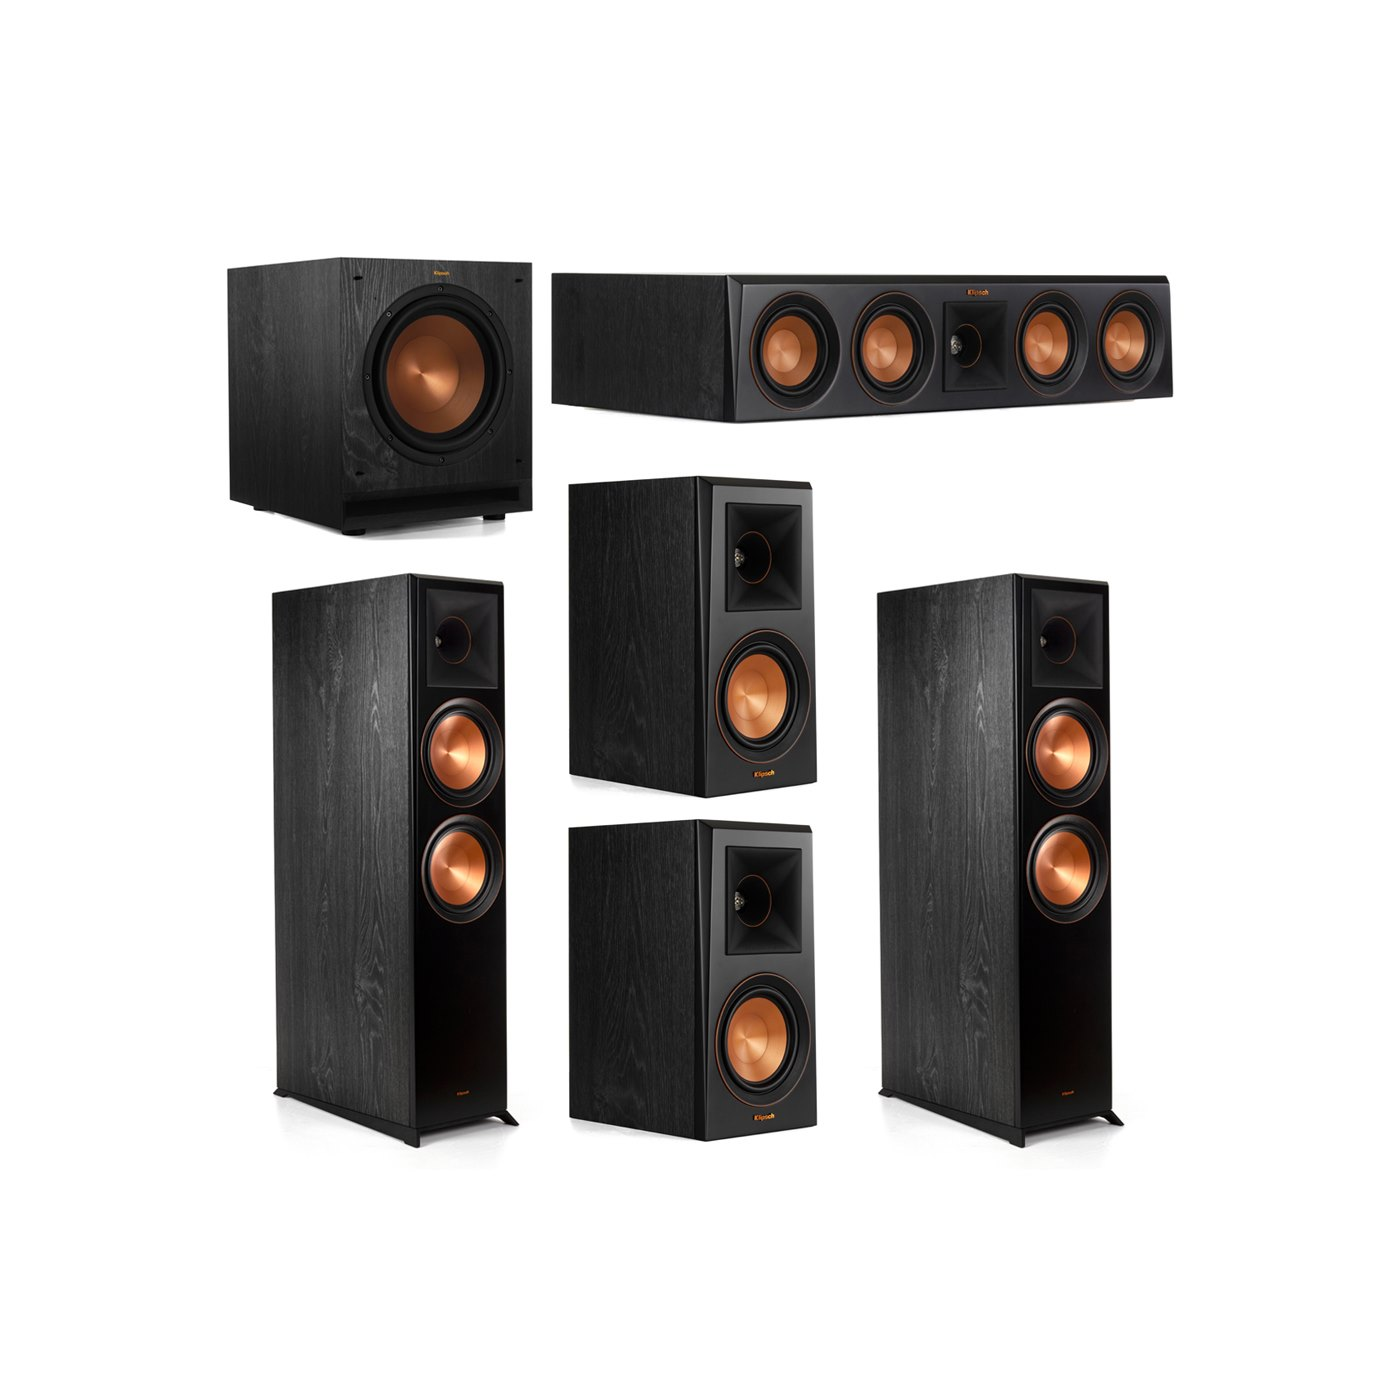 Klipsch 5.1.2 System - 2 RP-8060FA Dolby Atmos Speakers, 1 RP-404C, 2 RP-500M Speakers, 1 SPL-100